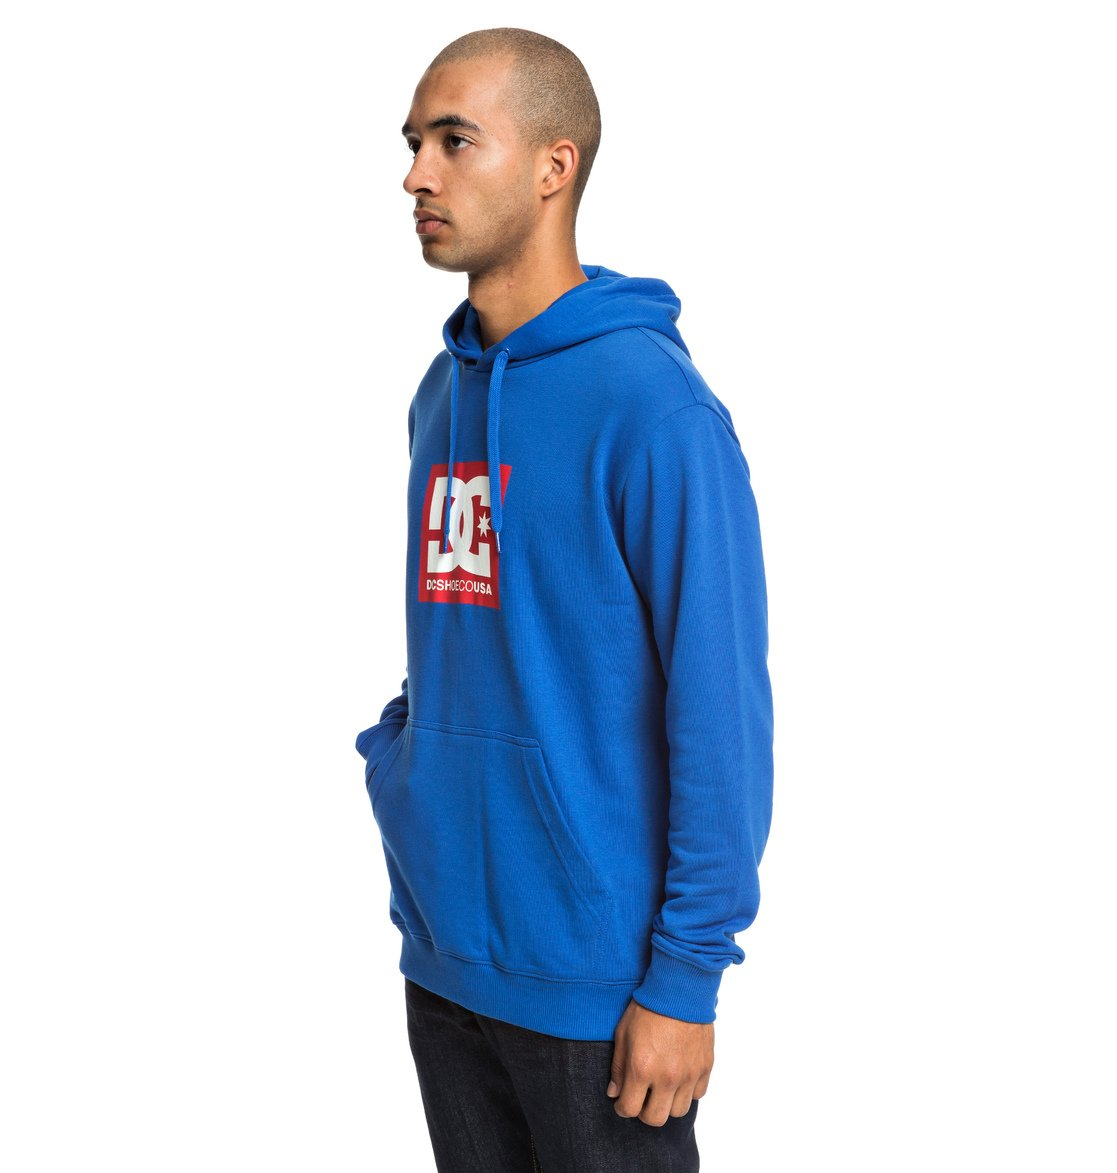 b36958f6 0 Square Star - Hoodie for Men Blue EDYSF03184 DC Shoes